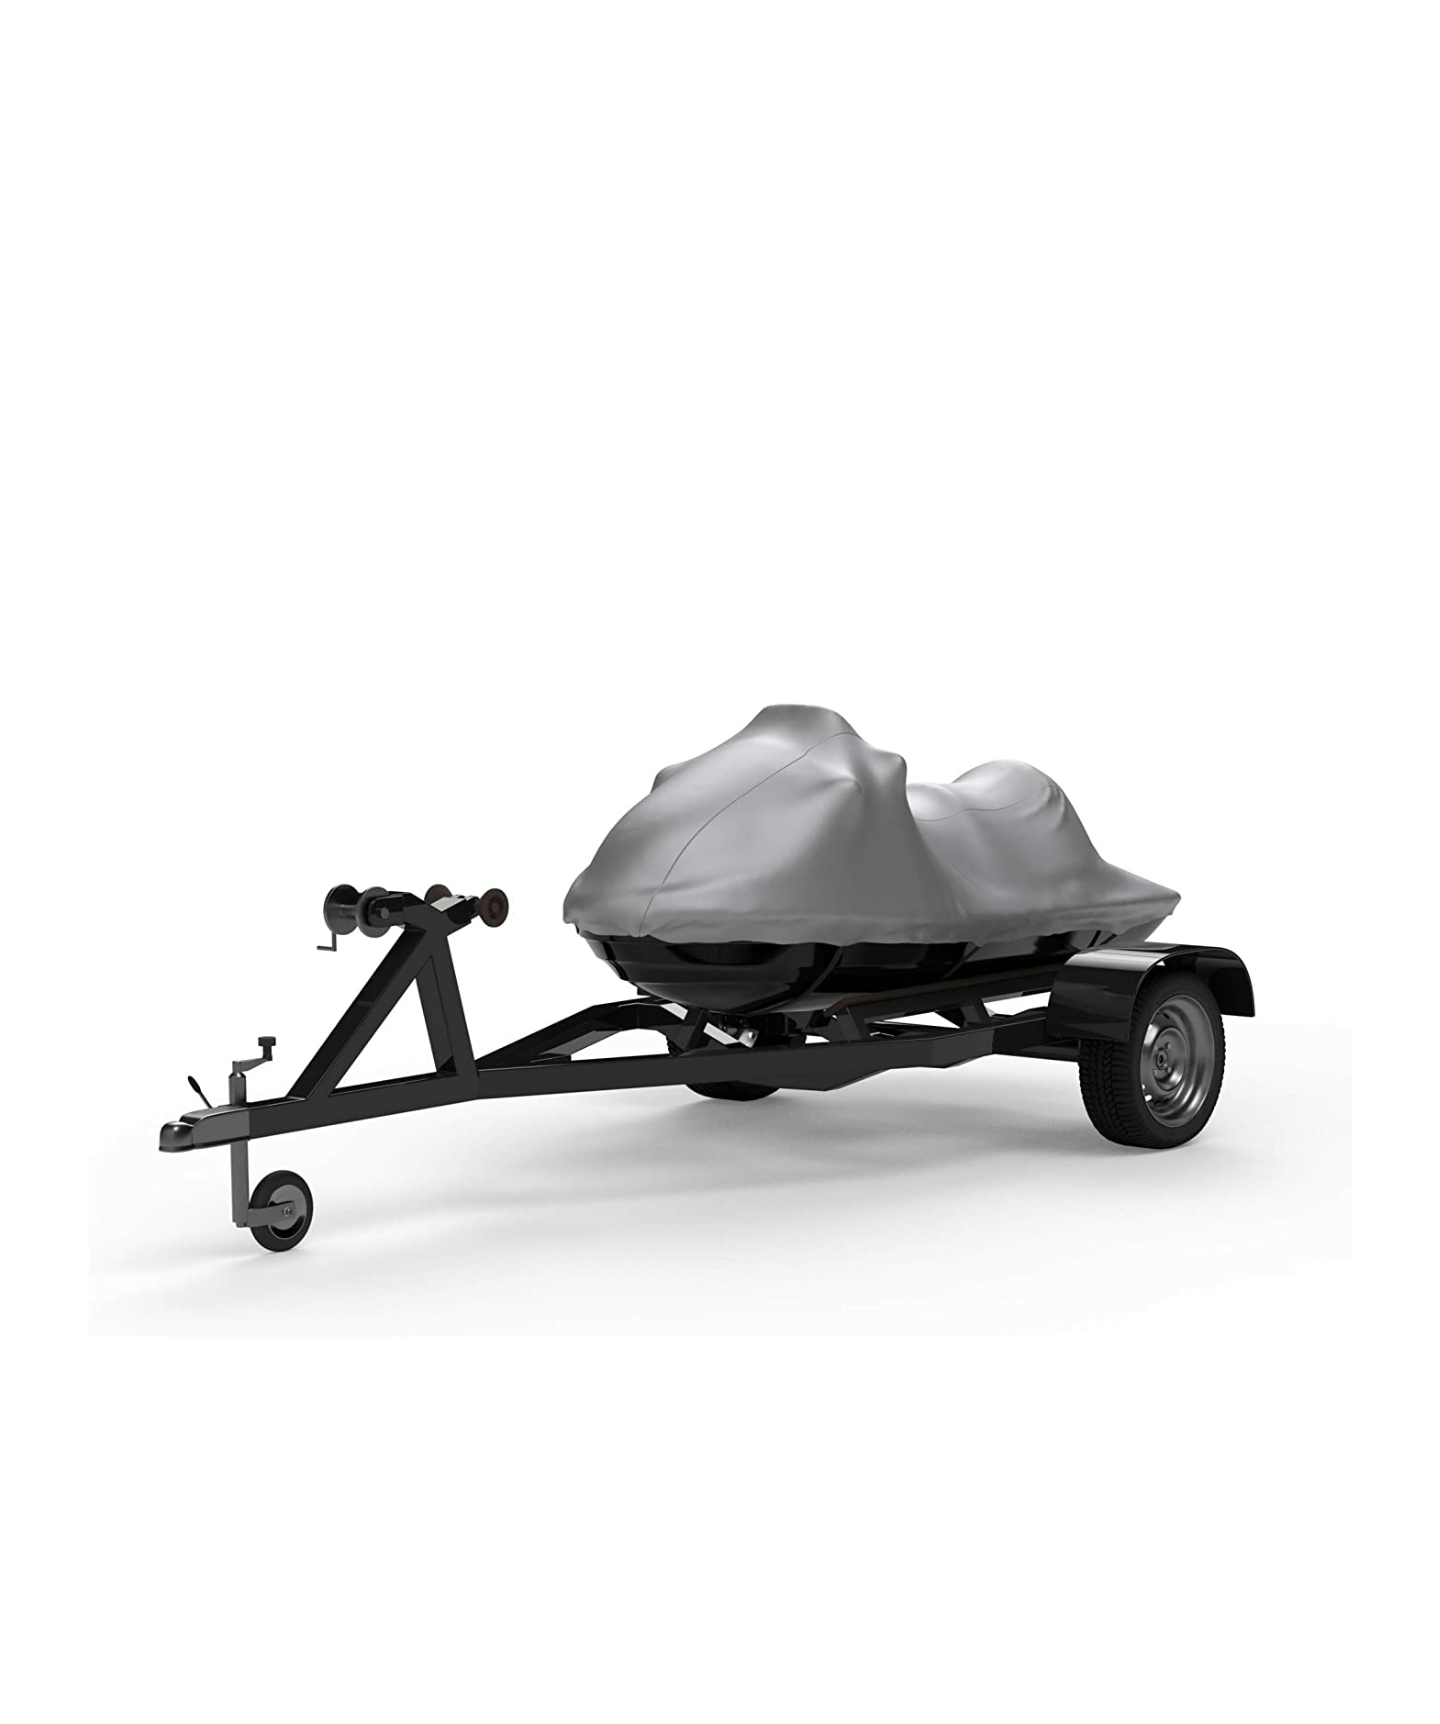 Weatherproof Jet Ski Covers for SEA DOO GTR-X 230 2017-2019 – Silver – Sun Protection – All Weather – Trailerable – Protects from Rain, Sun, and More! Includes Trailer Straps & Storage Bag